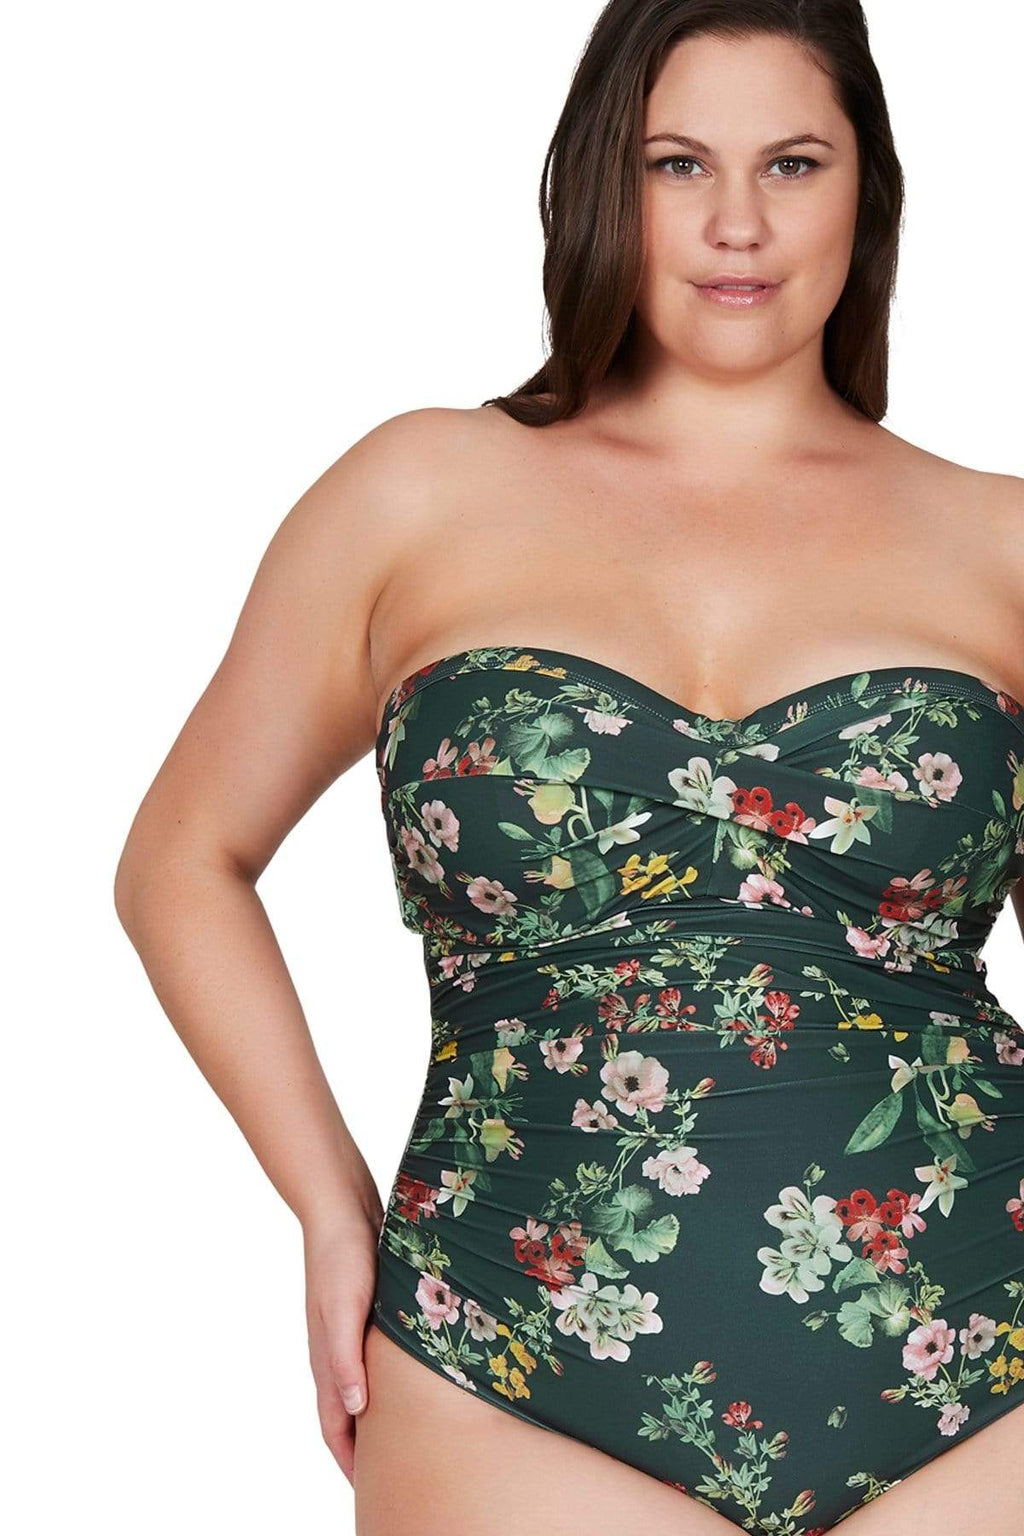 Artesands One Piece Green Neo Kimono Botticelli Bandeau One Piece Plus Size Curvy